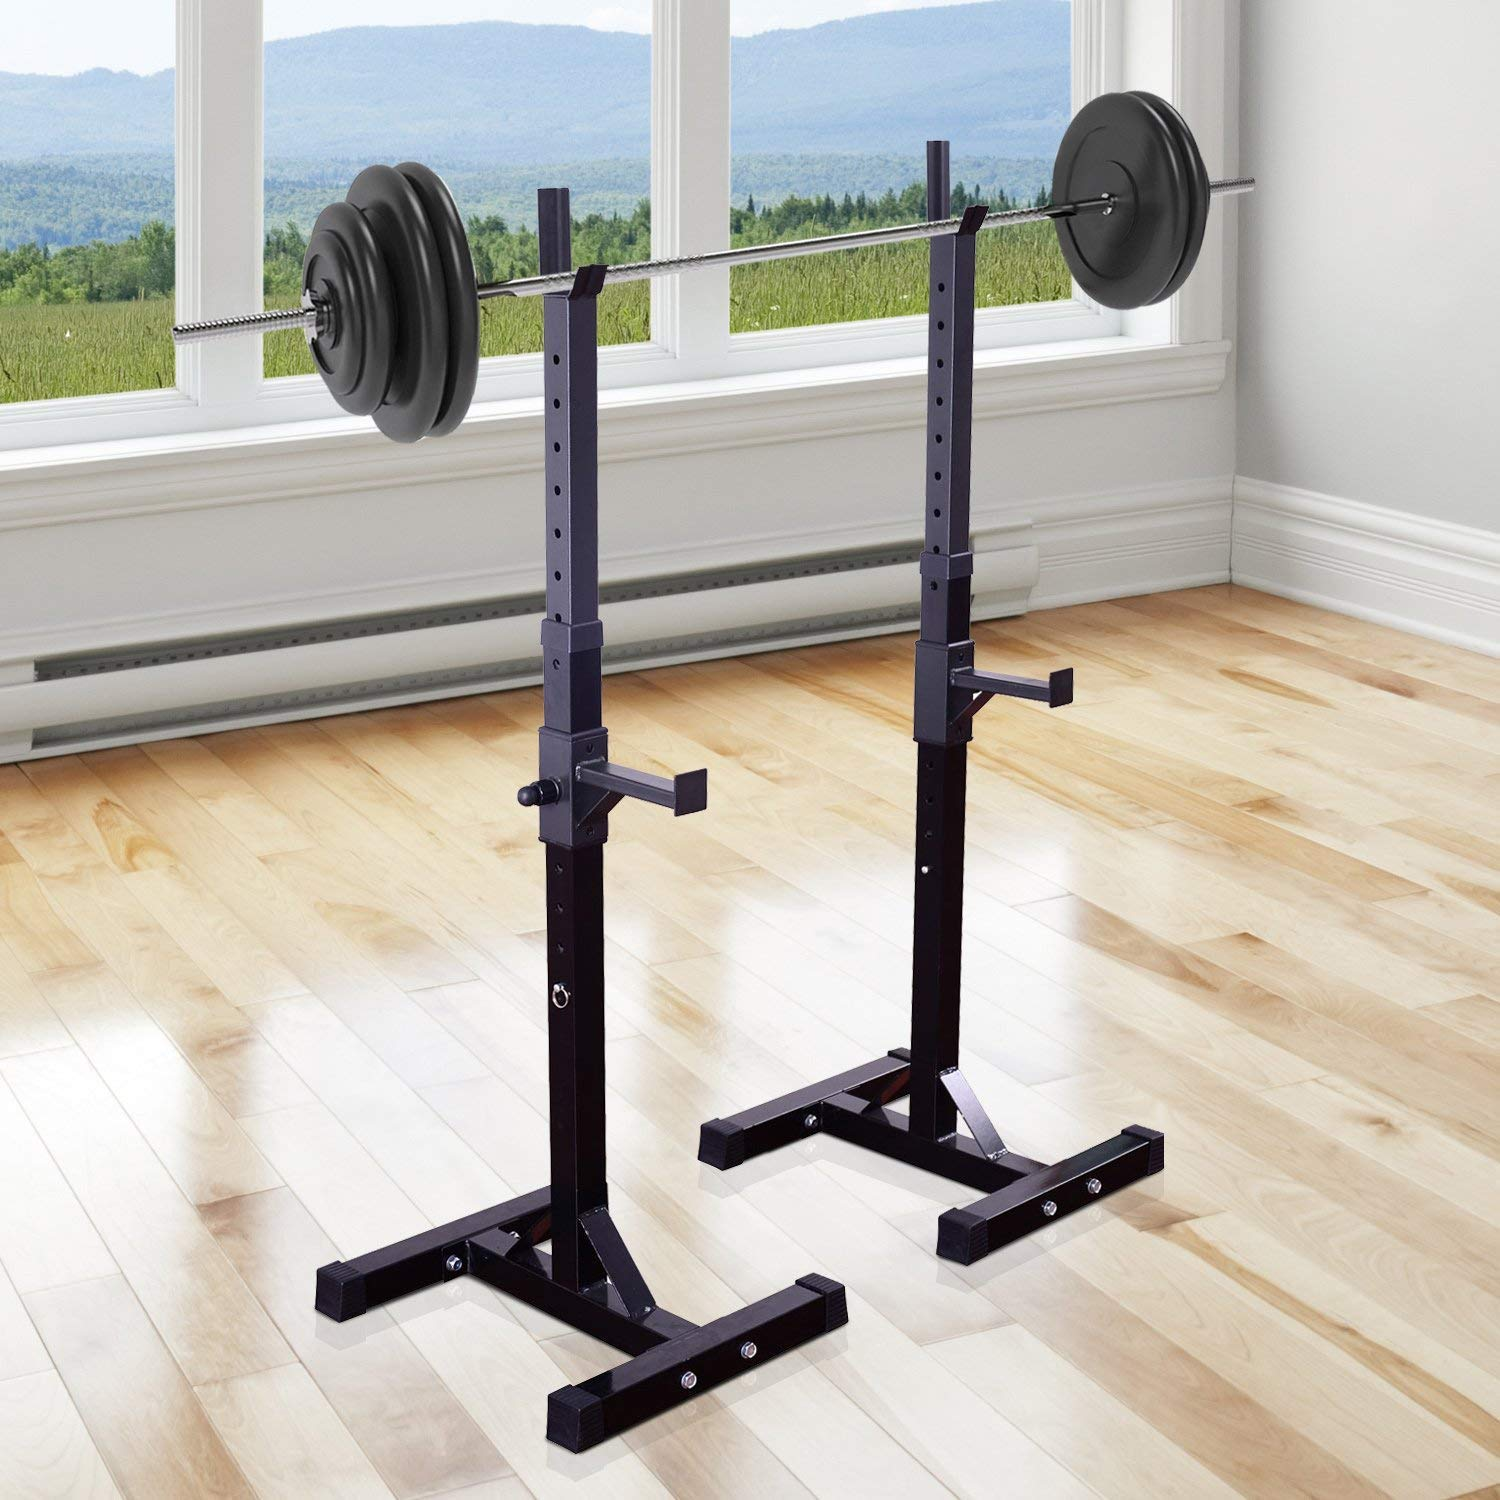 Blackpoolal Heavy Duty Weights Bar Barbell Squat Stand,Stands Barbell Rack Spotter Gym Fitness Power Rack Holder Bench